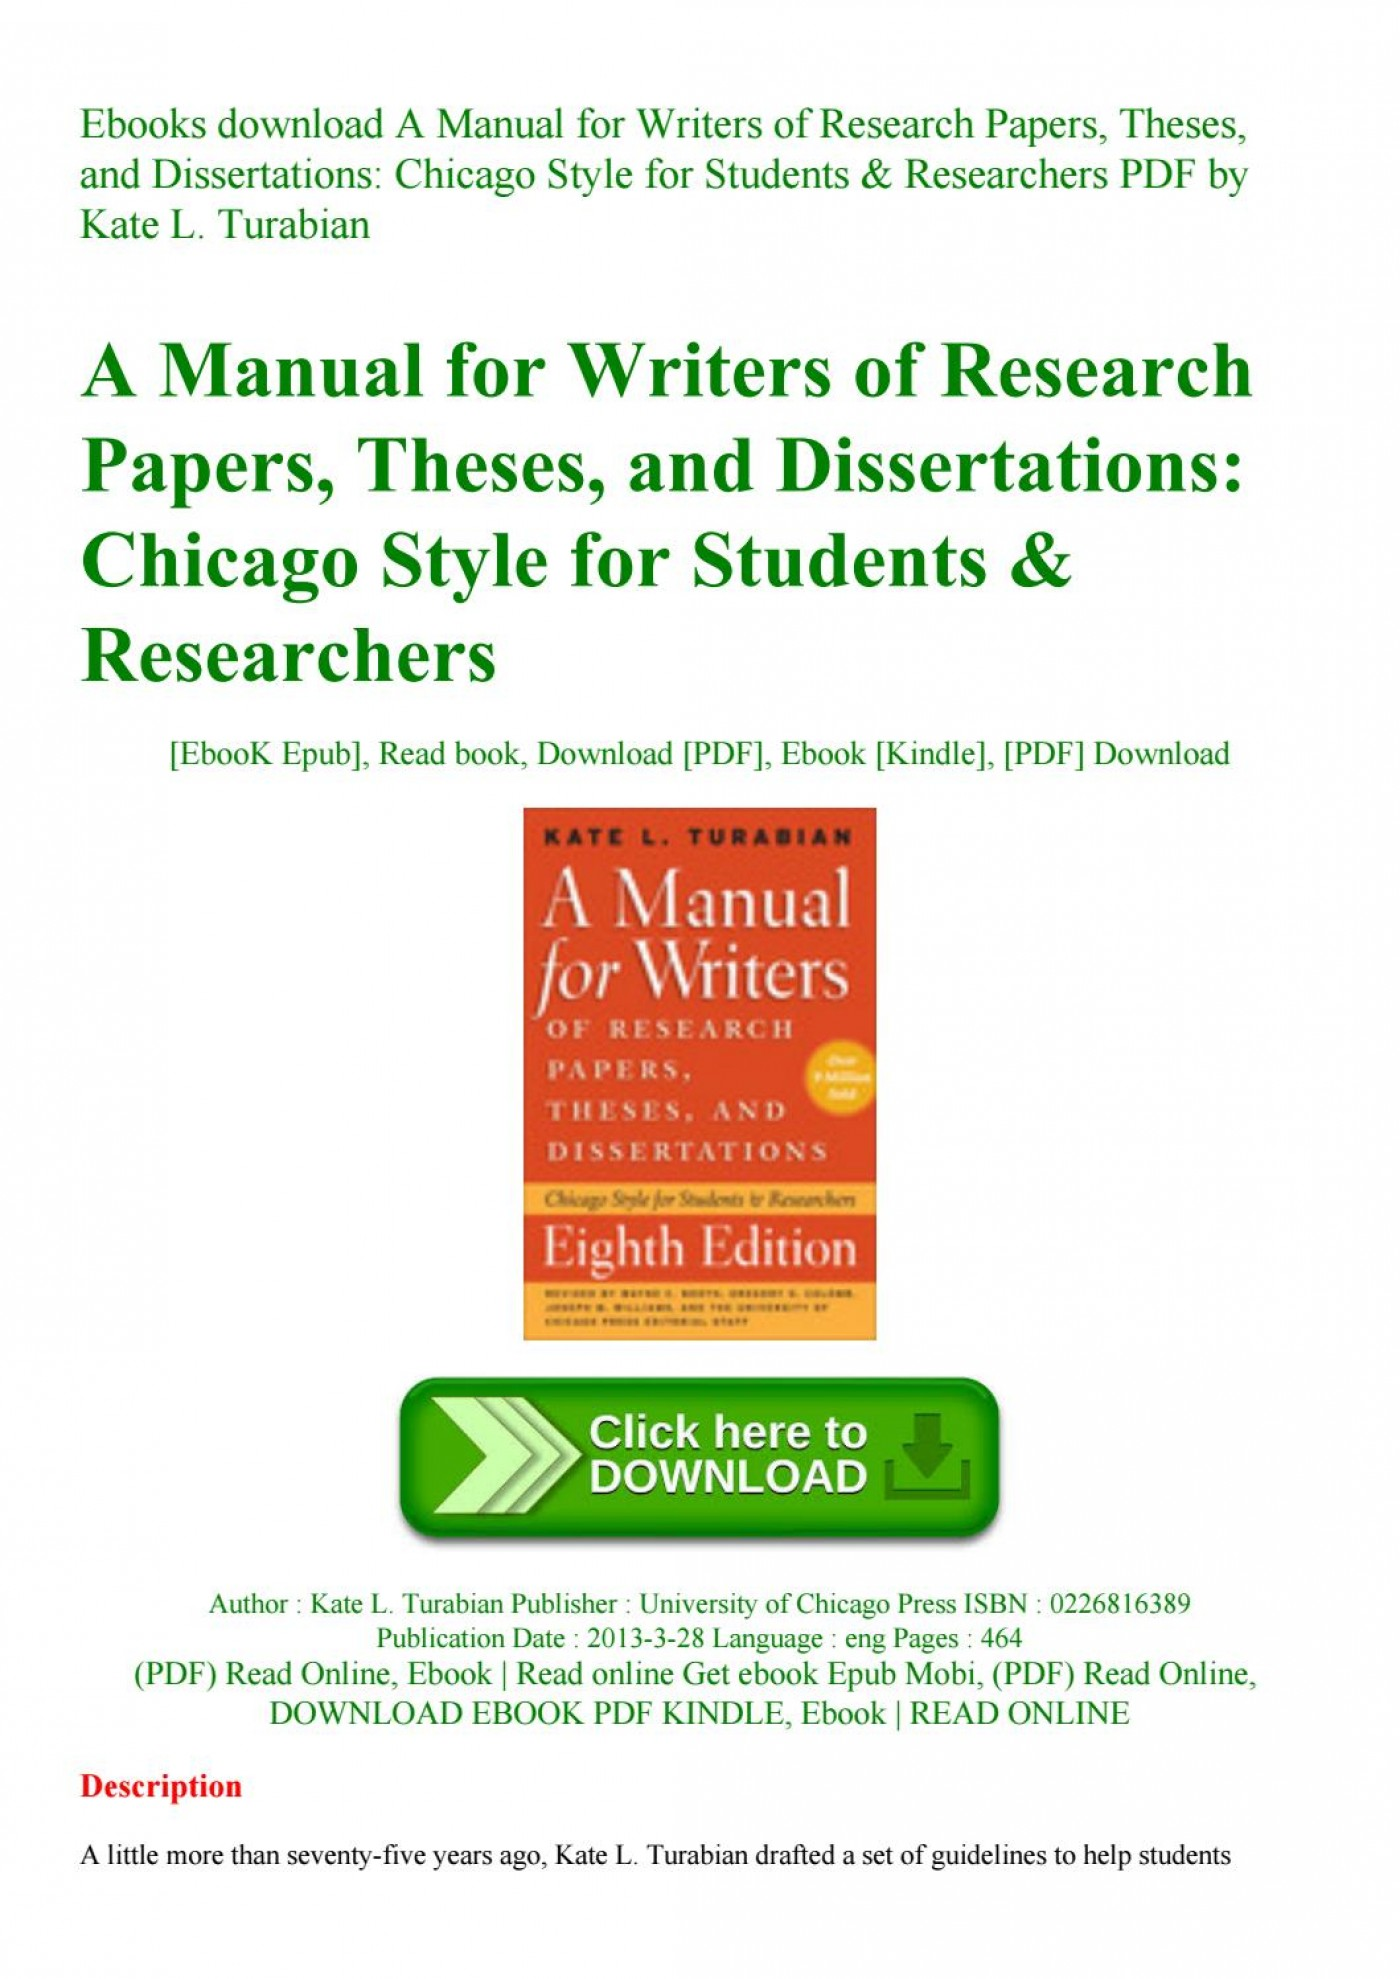 005 Page 1 Manual For Writers Of Researchs Theses And Dissertations Turabian Pdf Wonderful A Research Papers 1400